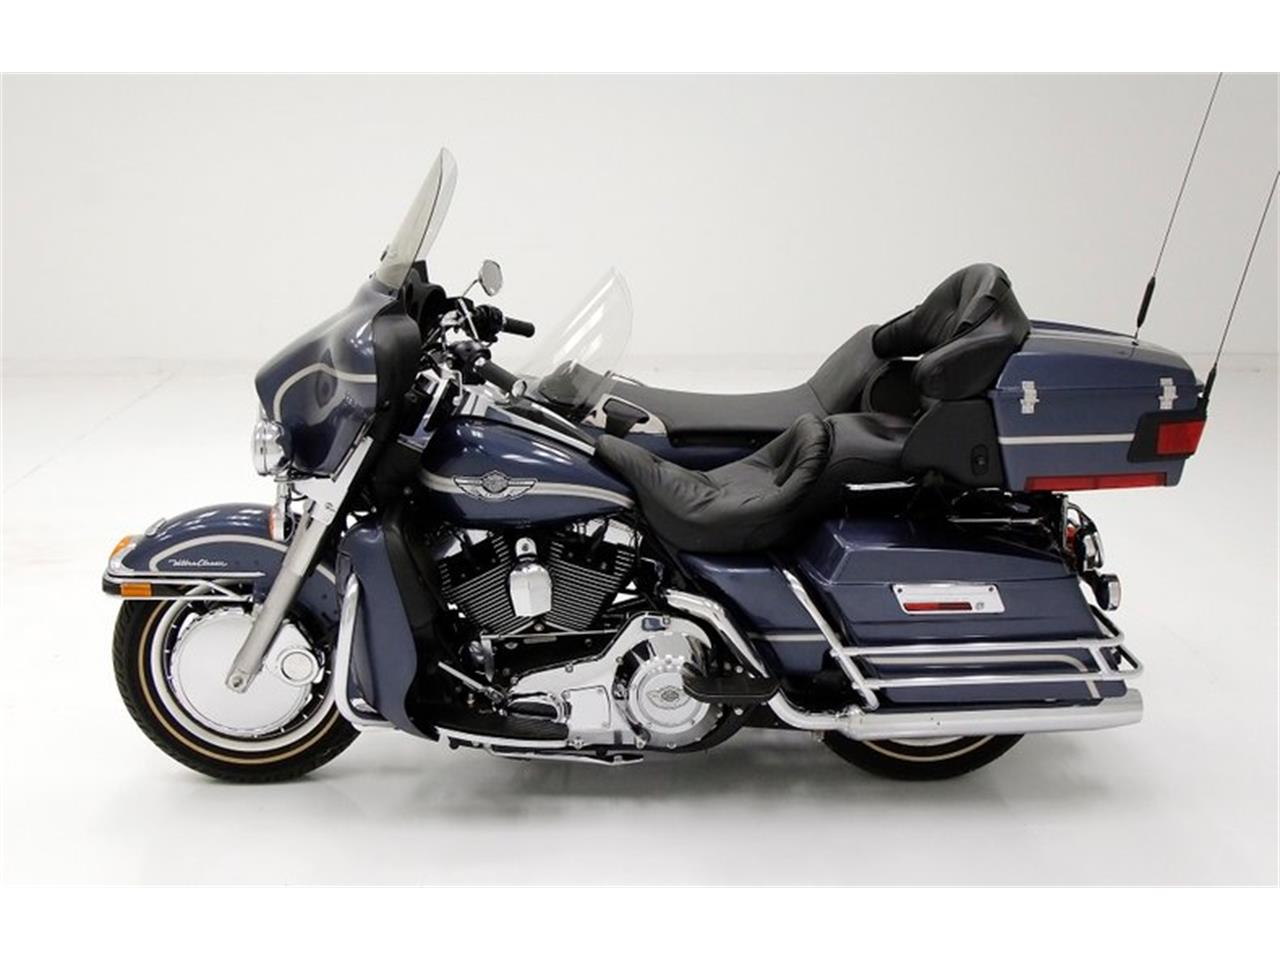 Large Picture of 2003 Harley-Davidson Electra Glide located in Pennsylvania - $35,000.00 Offered by Classic Auto Mall - Q3ZG